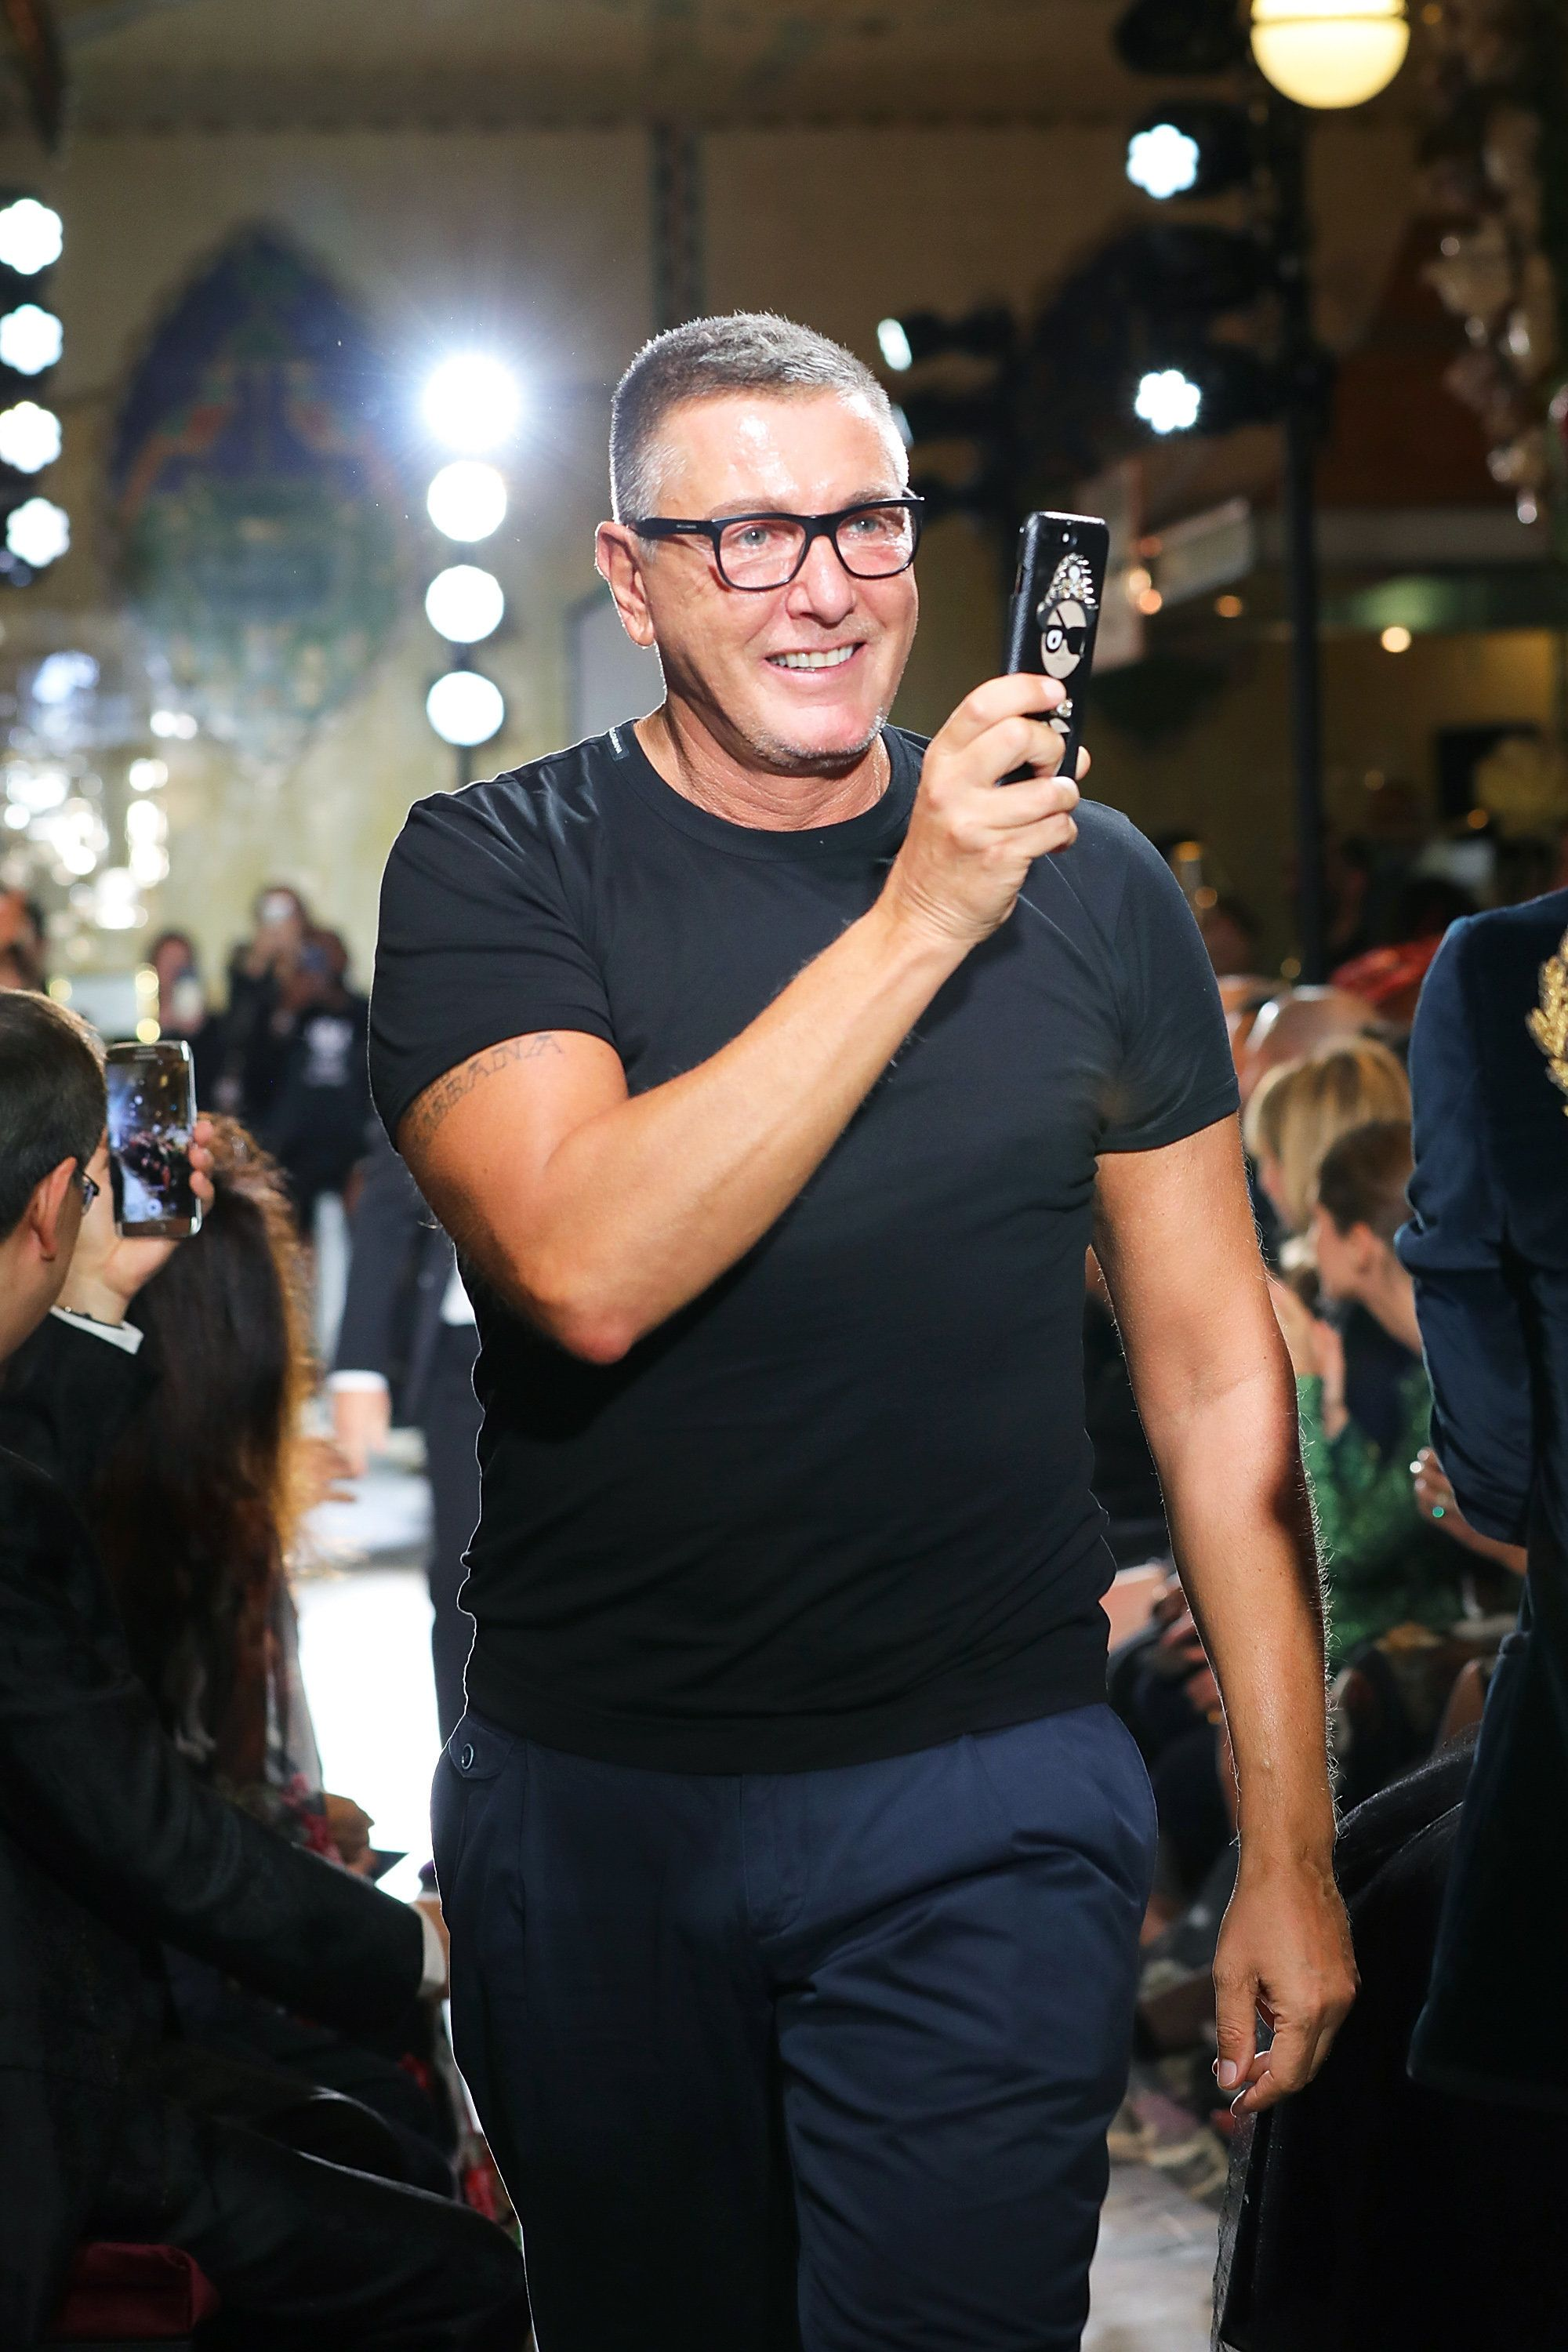 """The word 'gay' was invented by those who need to label people,"" designer Stefano Gabbana said."